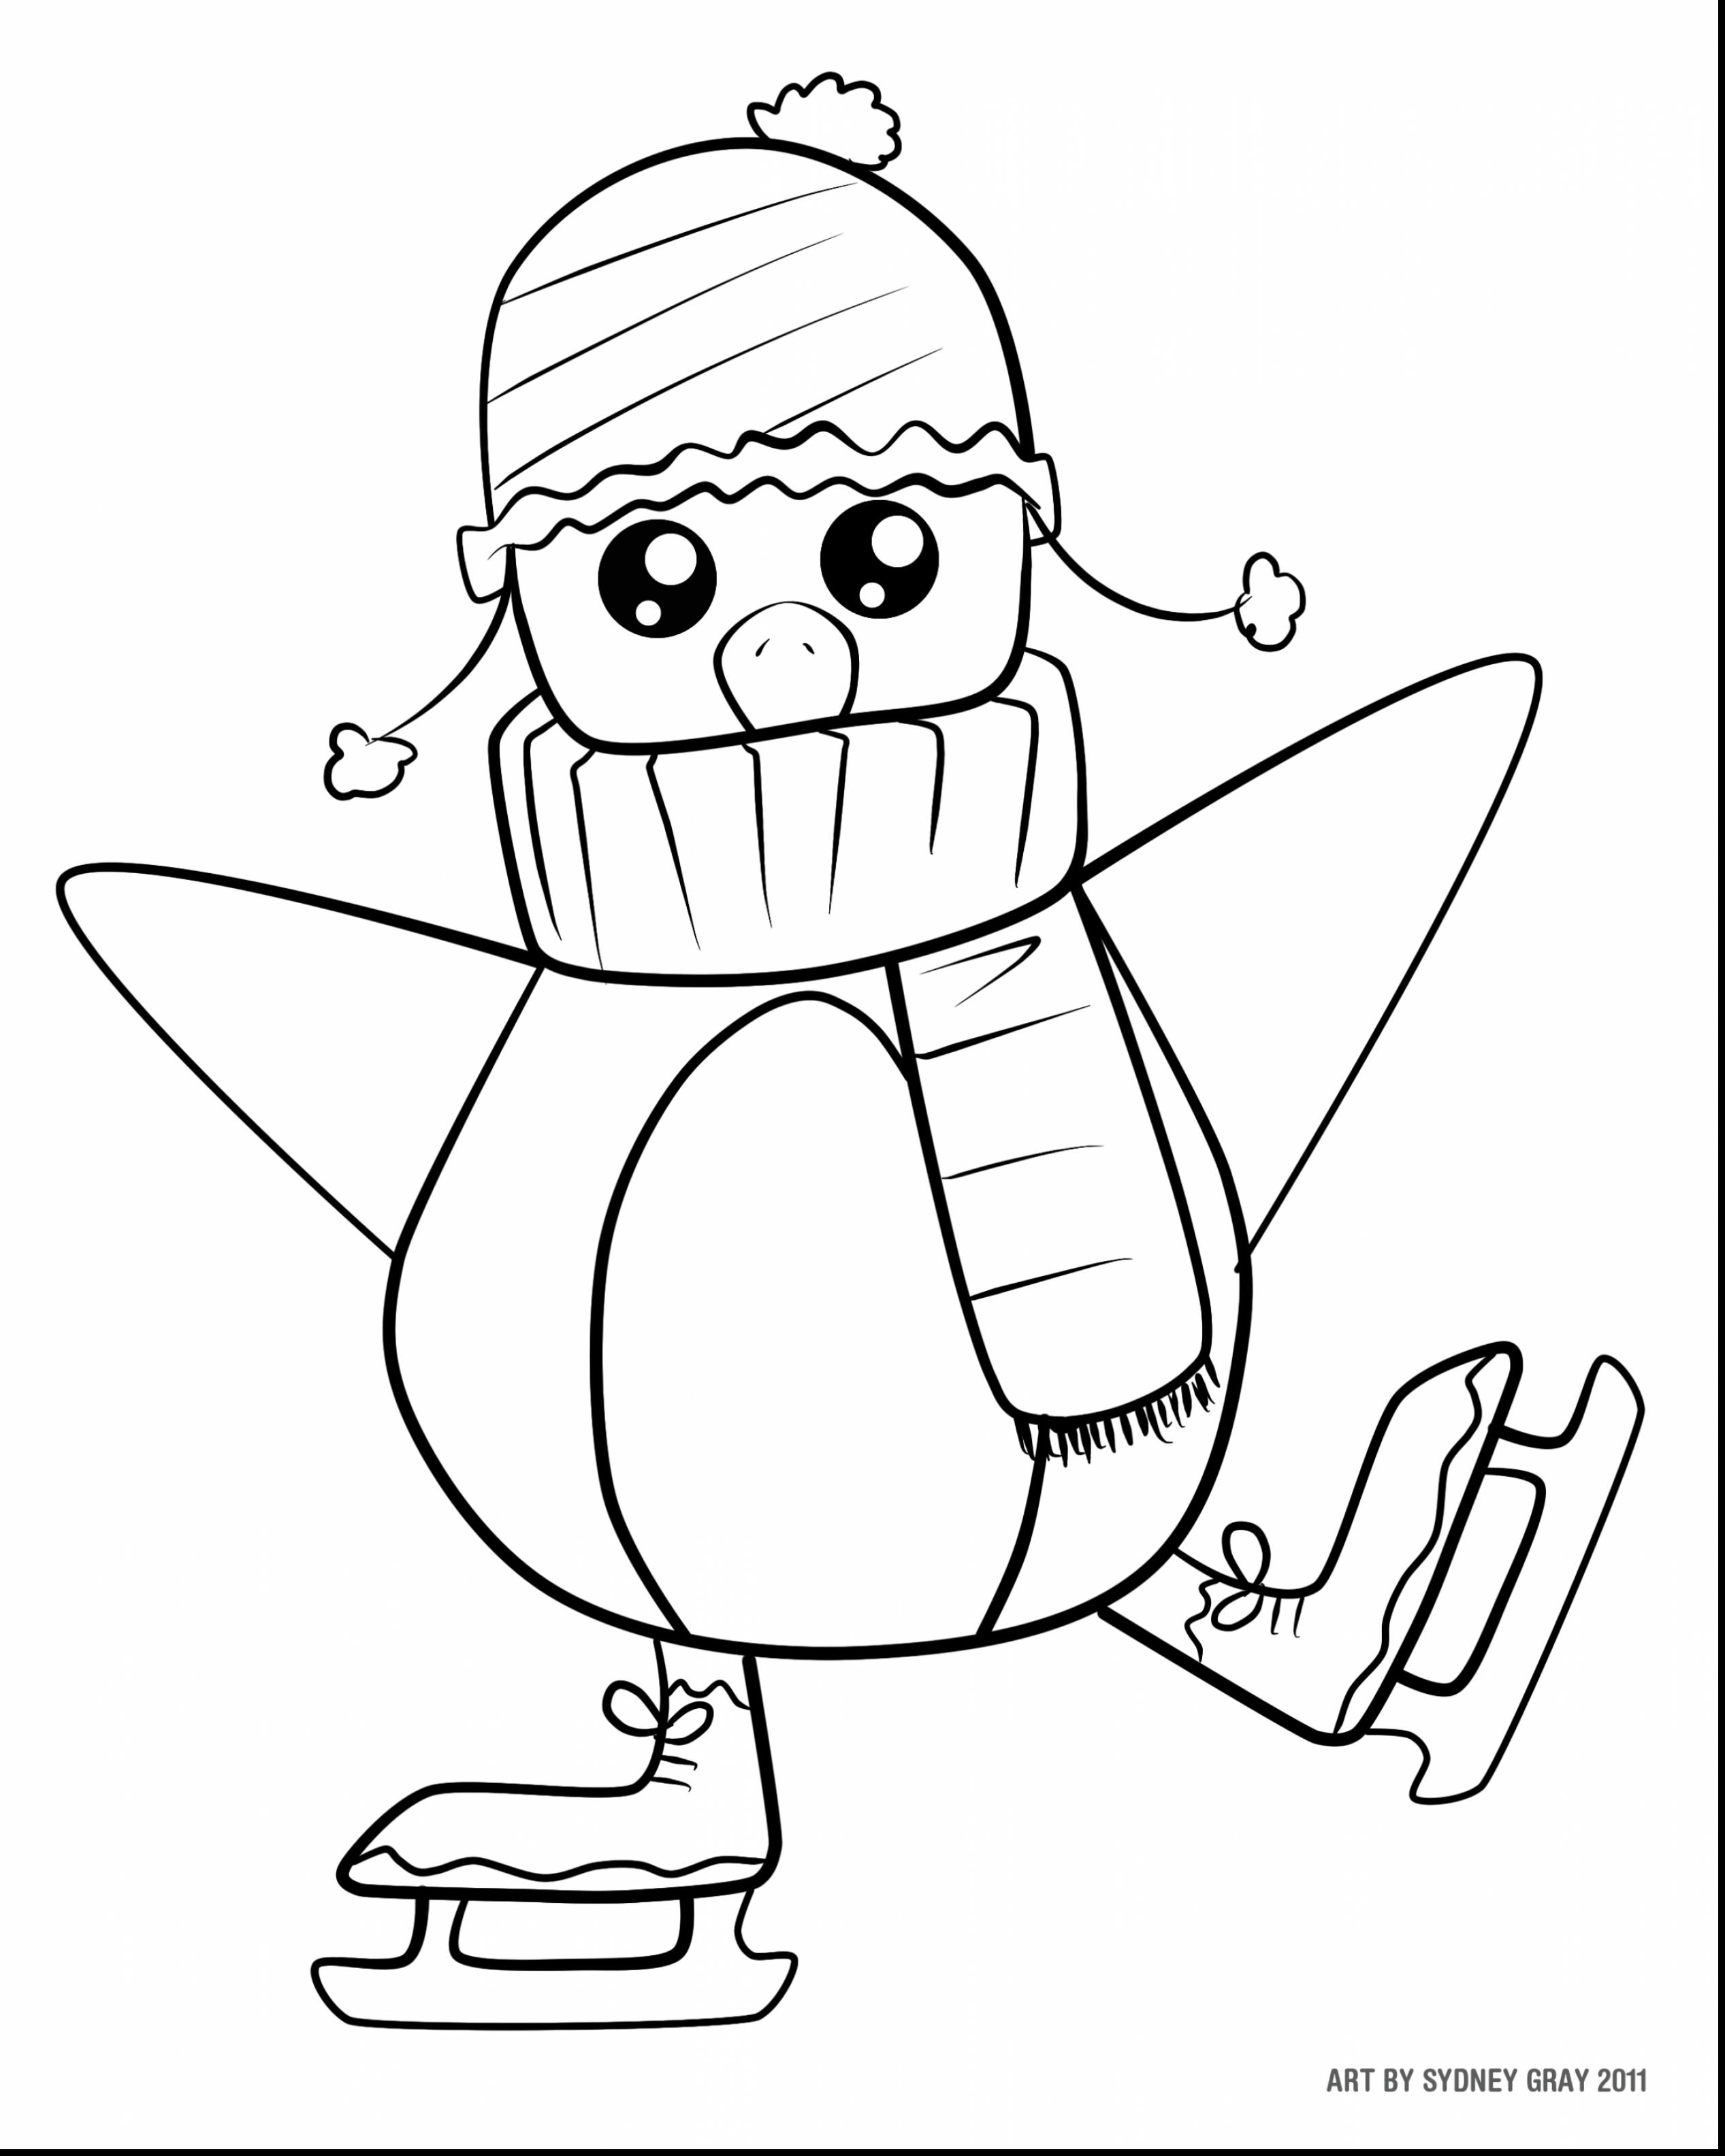 Cute Christmas Coloring Pages Printable With Penguin Free Books